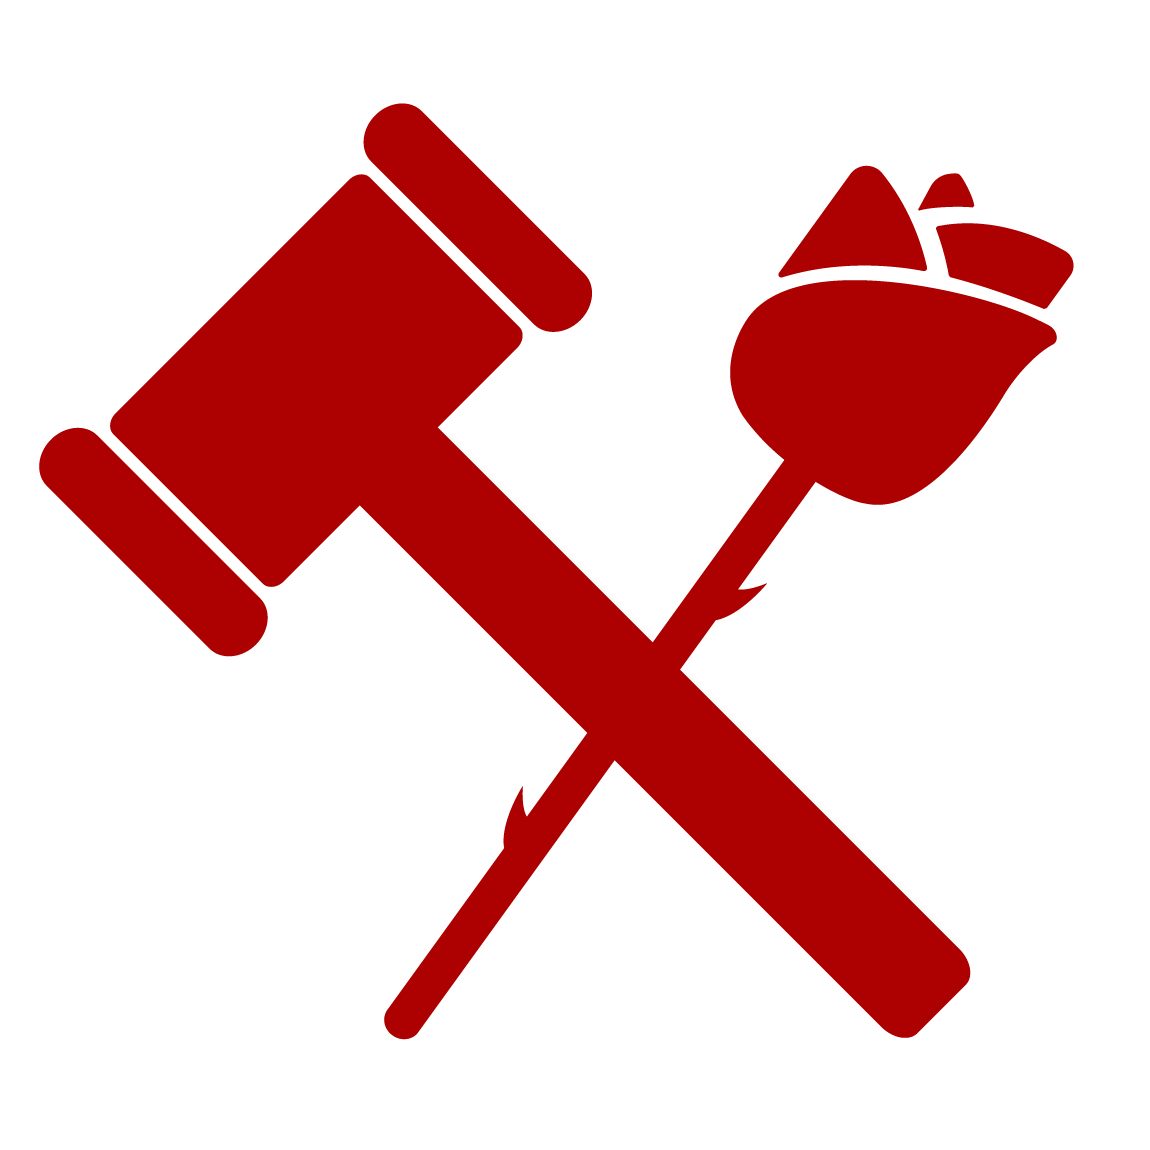 Argumentation and persuasion consulting. Clipart hammer debate